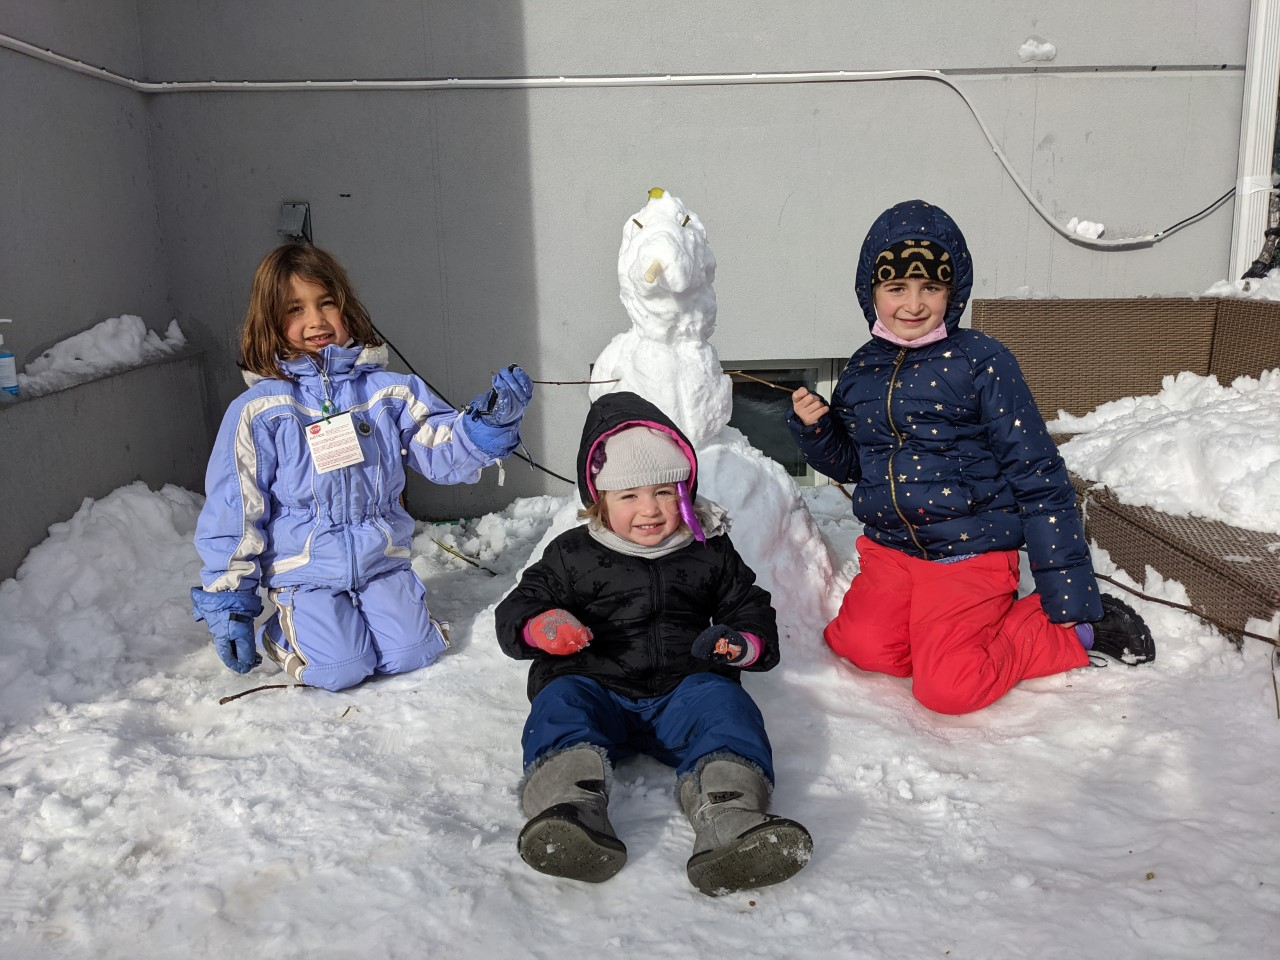 3 children on the ground with a snowman